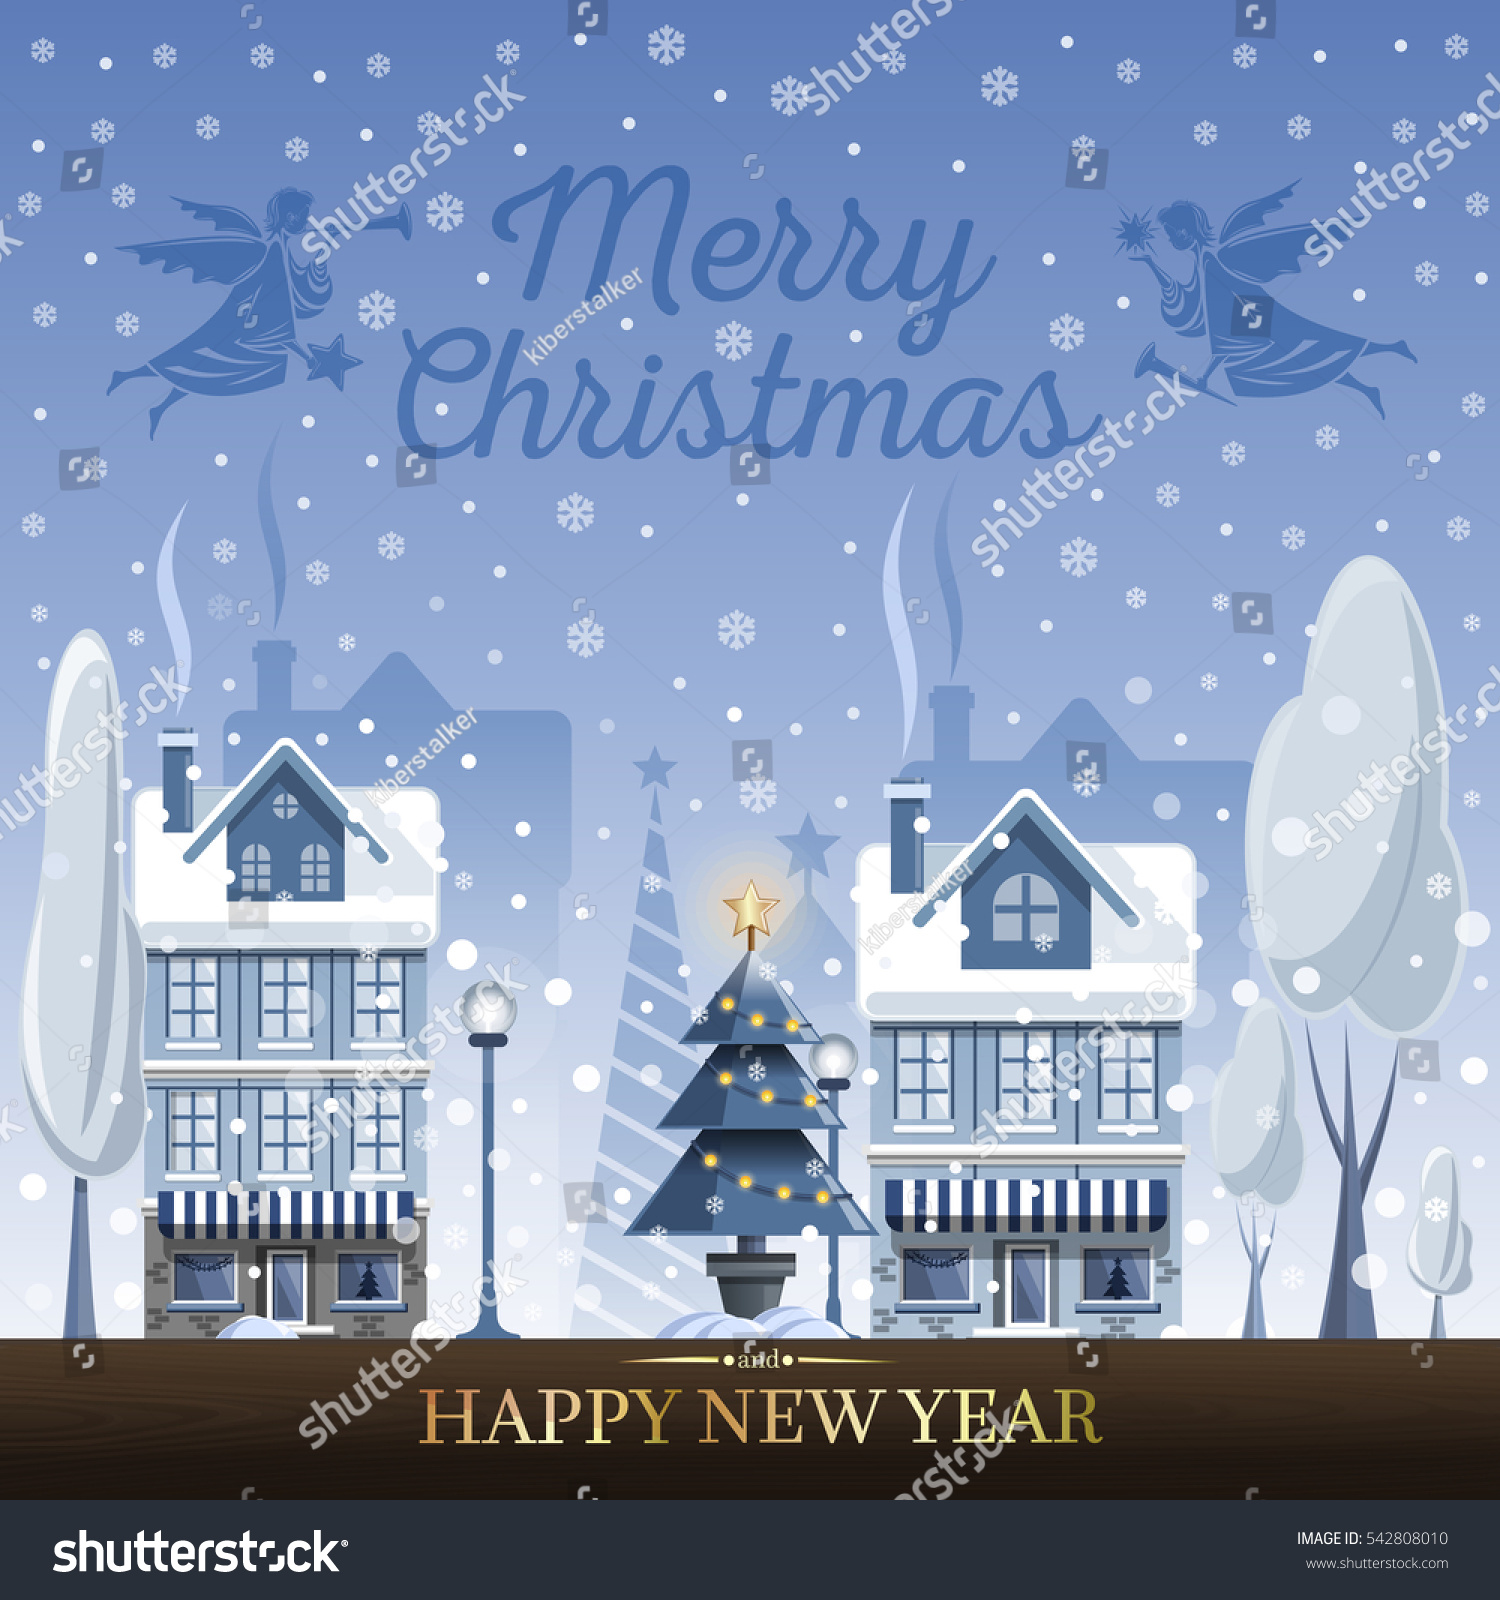 Winter Landscape Christmas Greeting Card Christmas Stock Vector